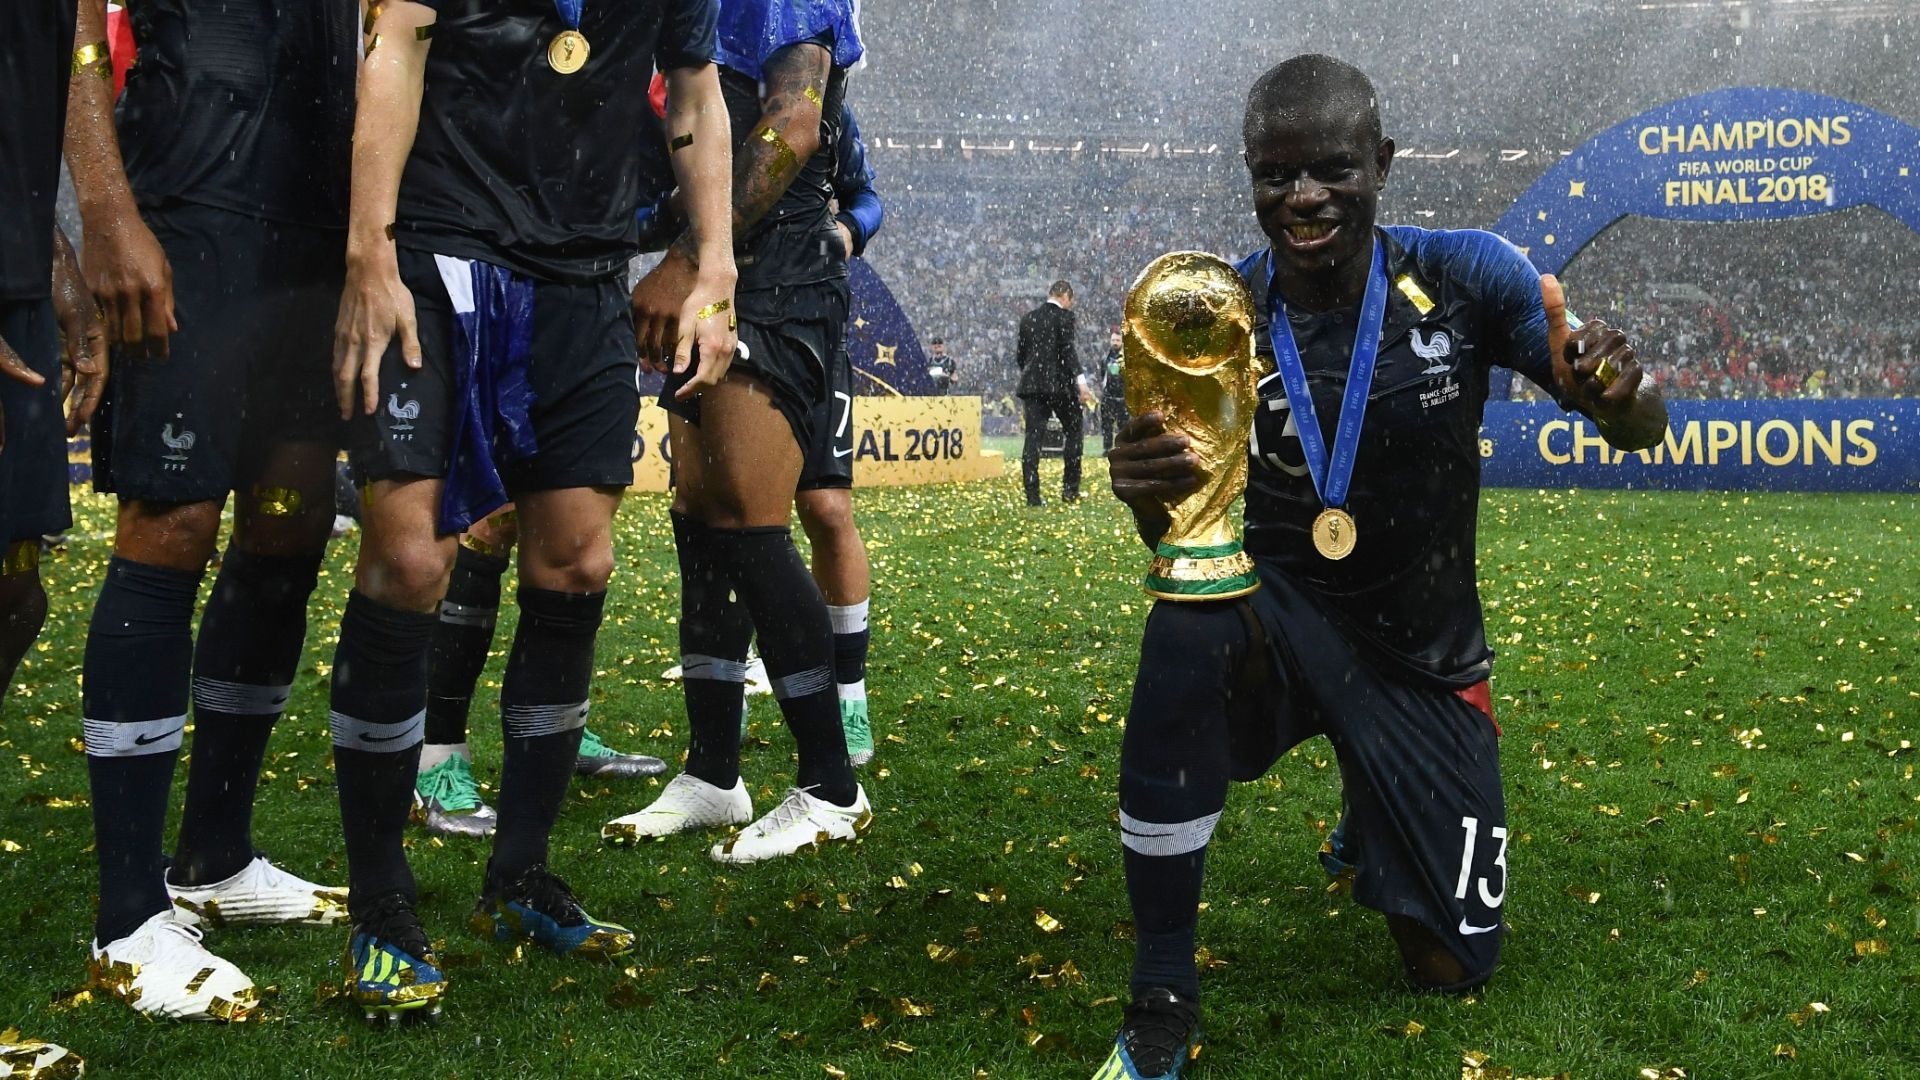 kylian-mbappe-pitched-ngolo-kante-on-potential-psg-transfer.jpg